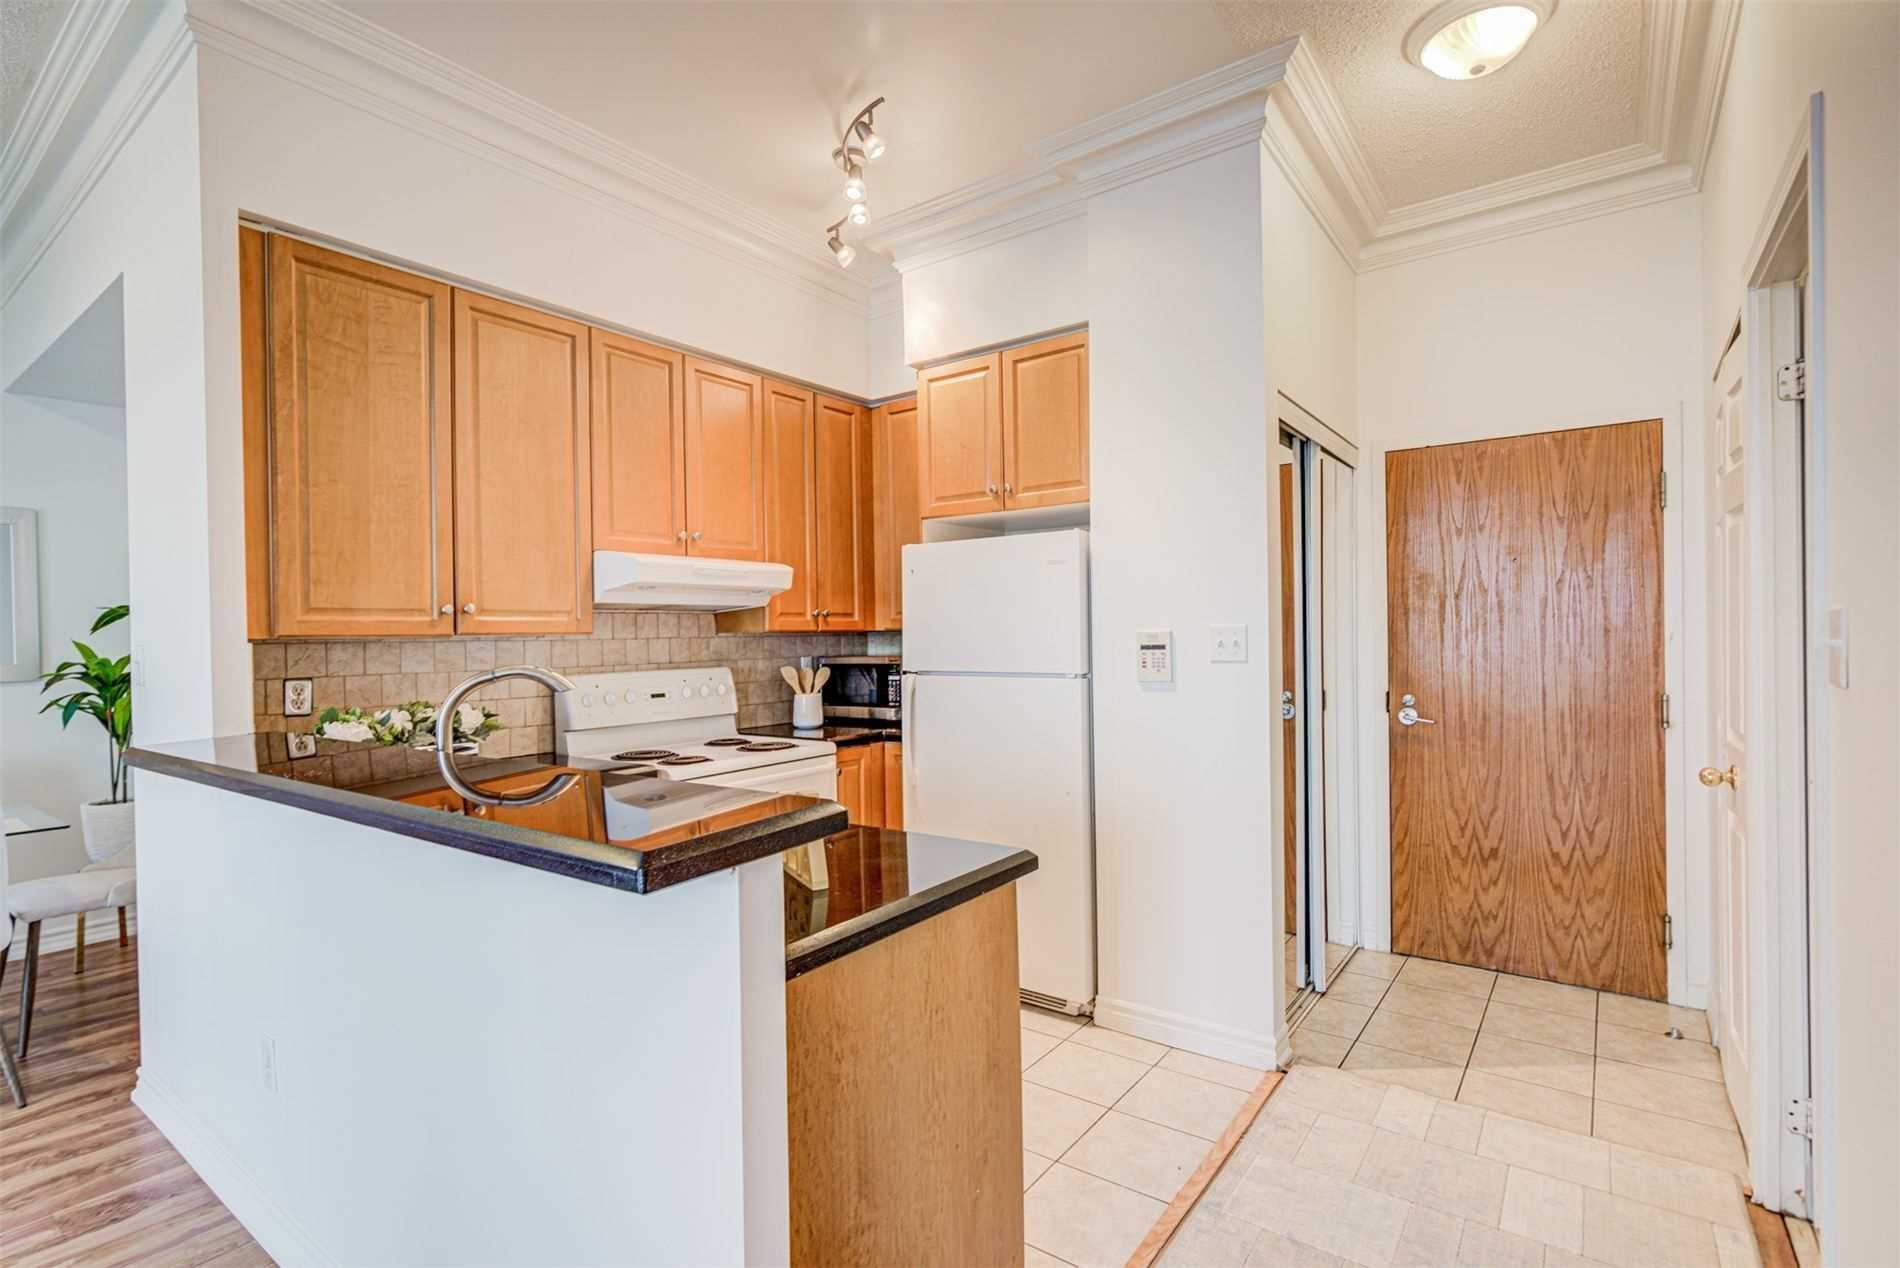 7 Lorraine Dr, unit Uph09 for rent in Toronto - image #1